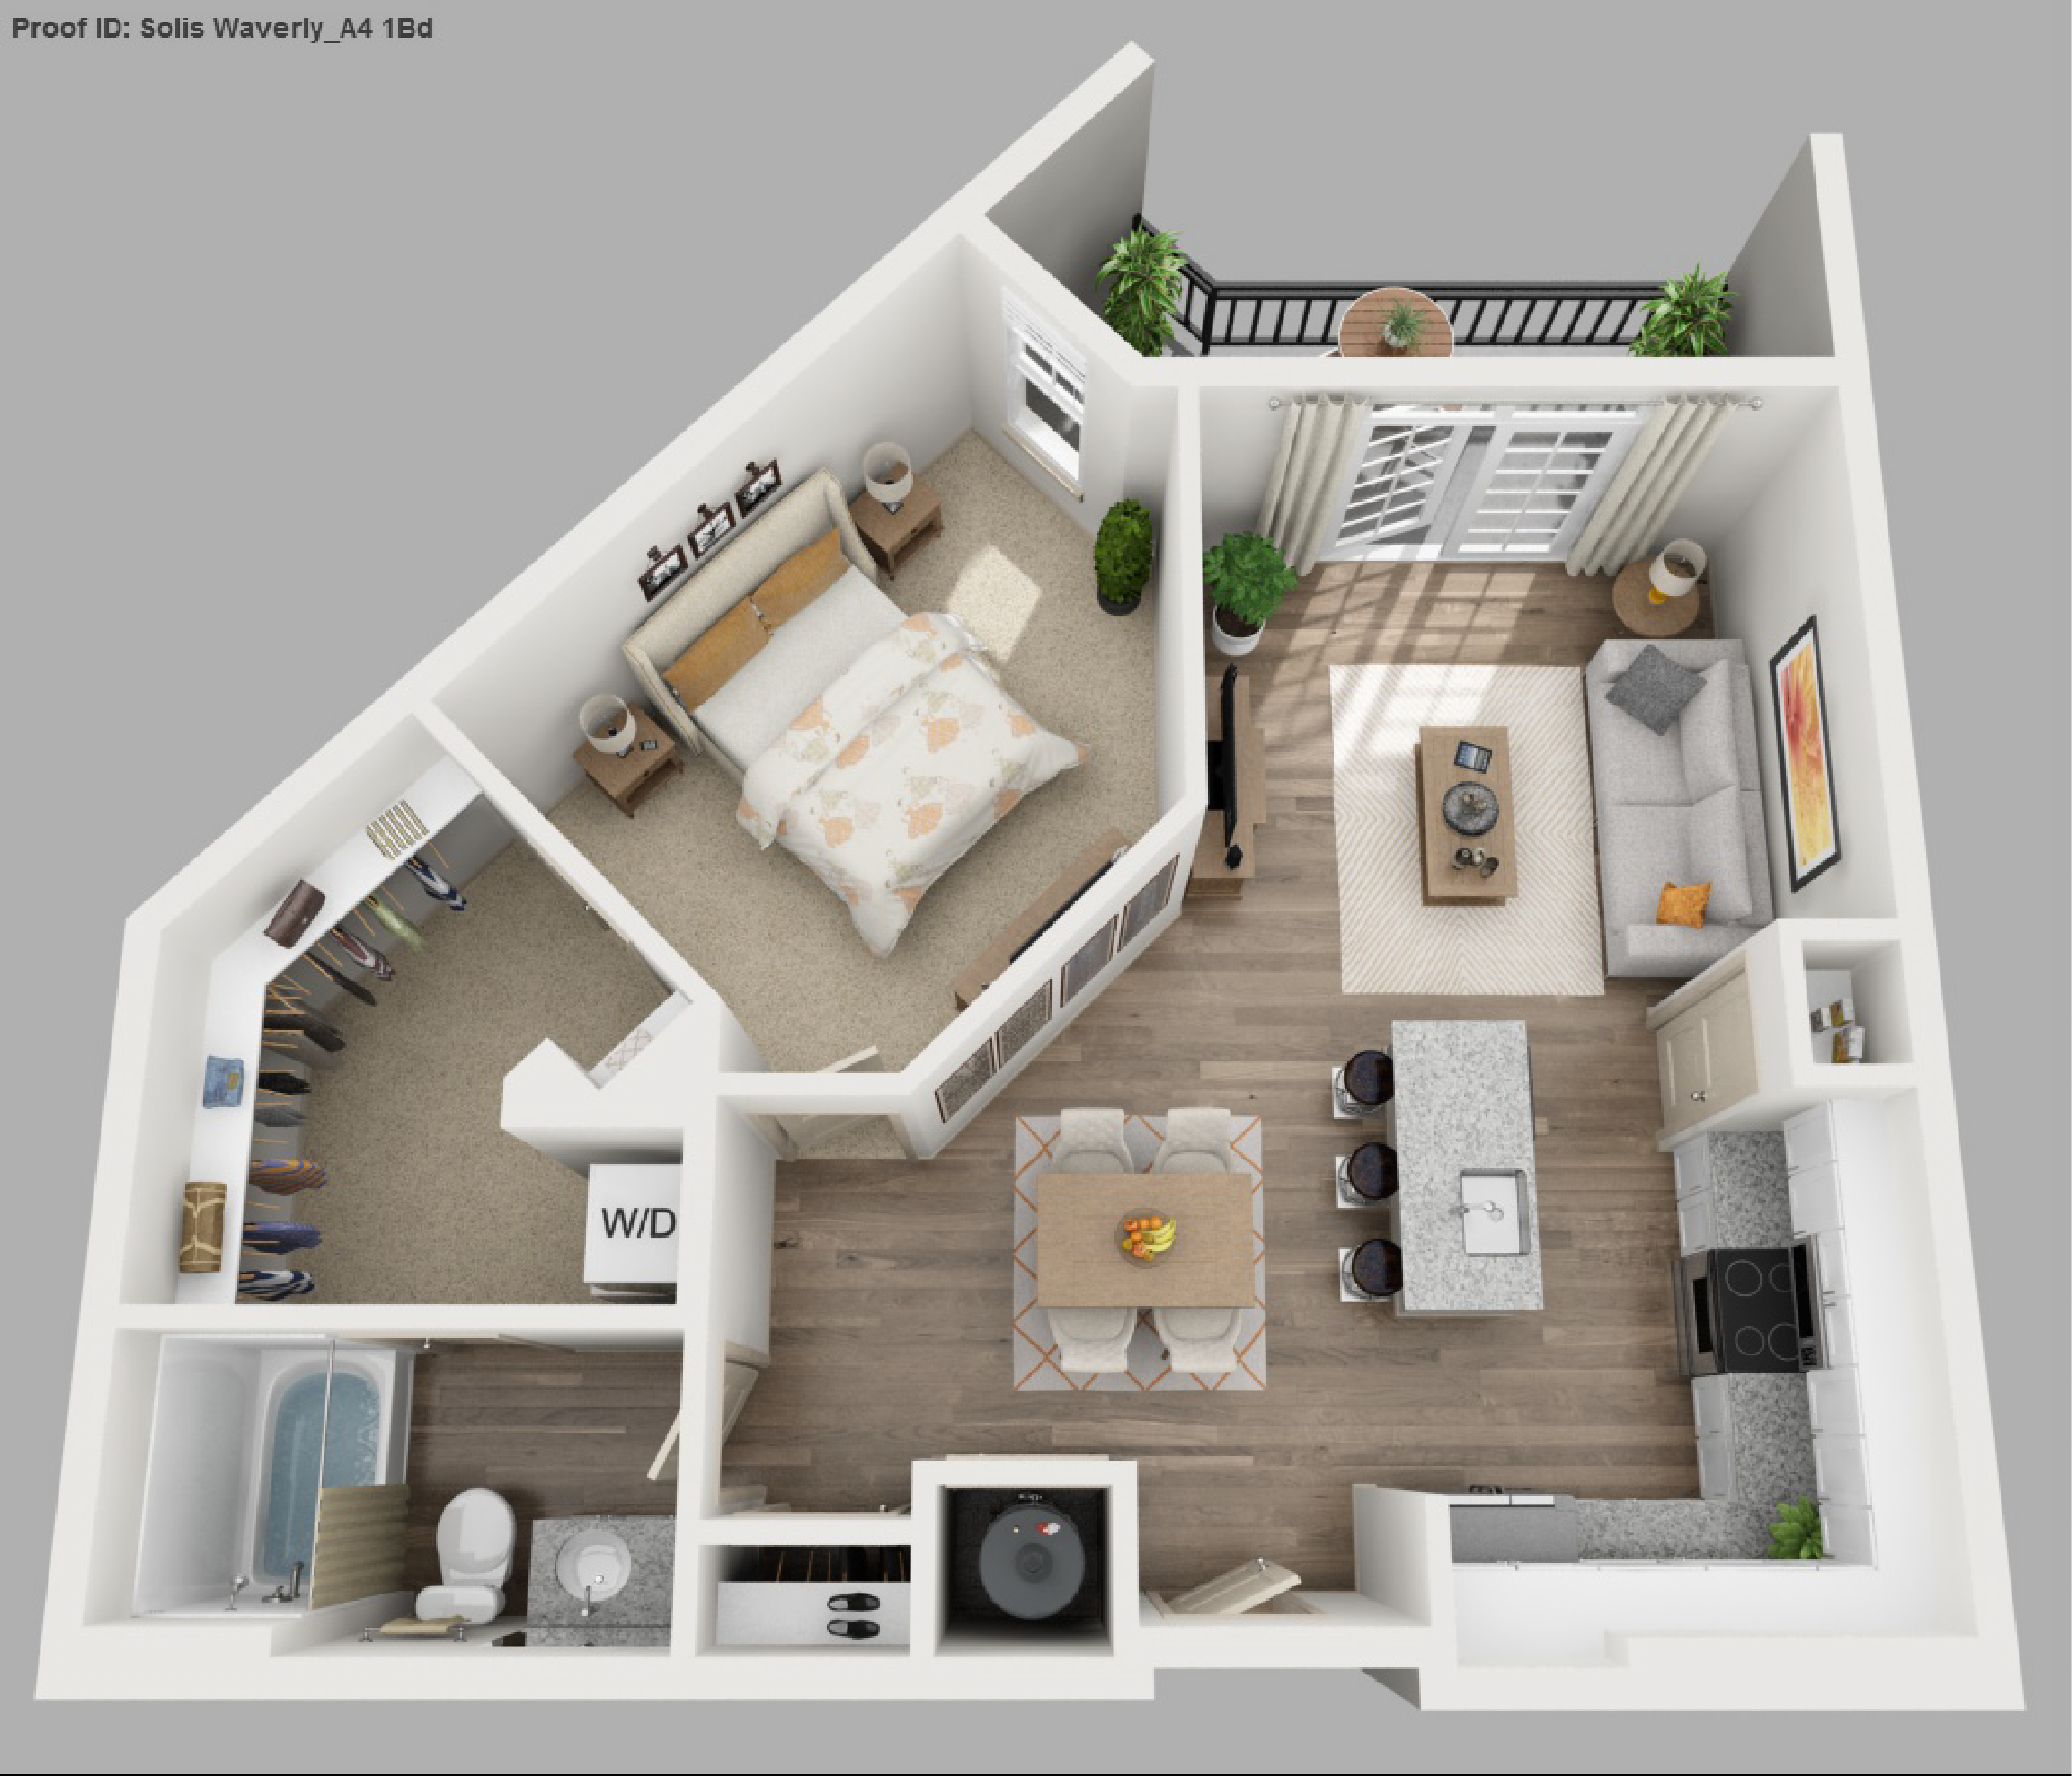 Solis apartments floorplans waverly for Apartment design plans 3d